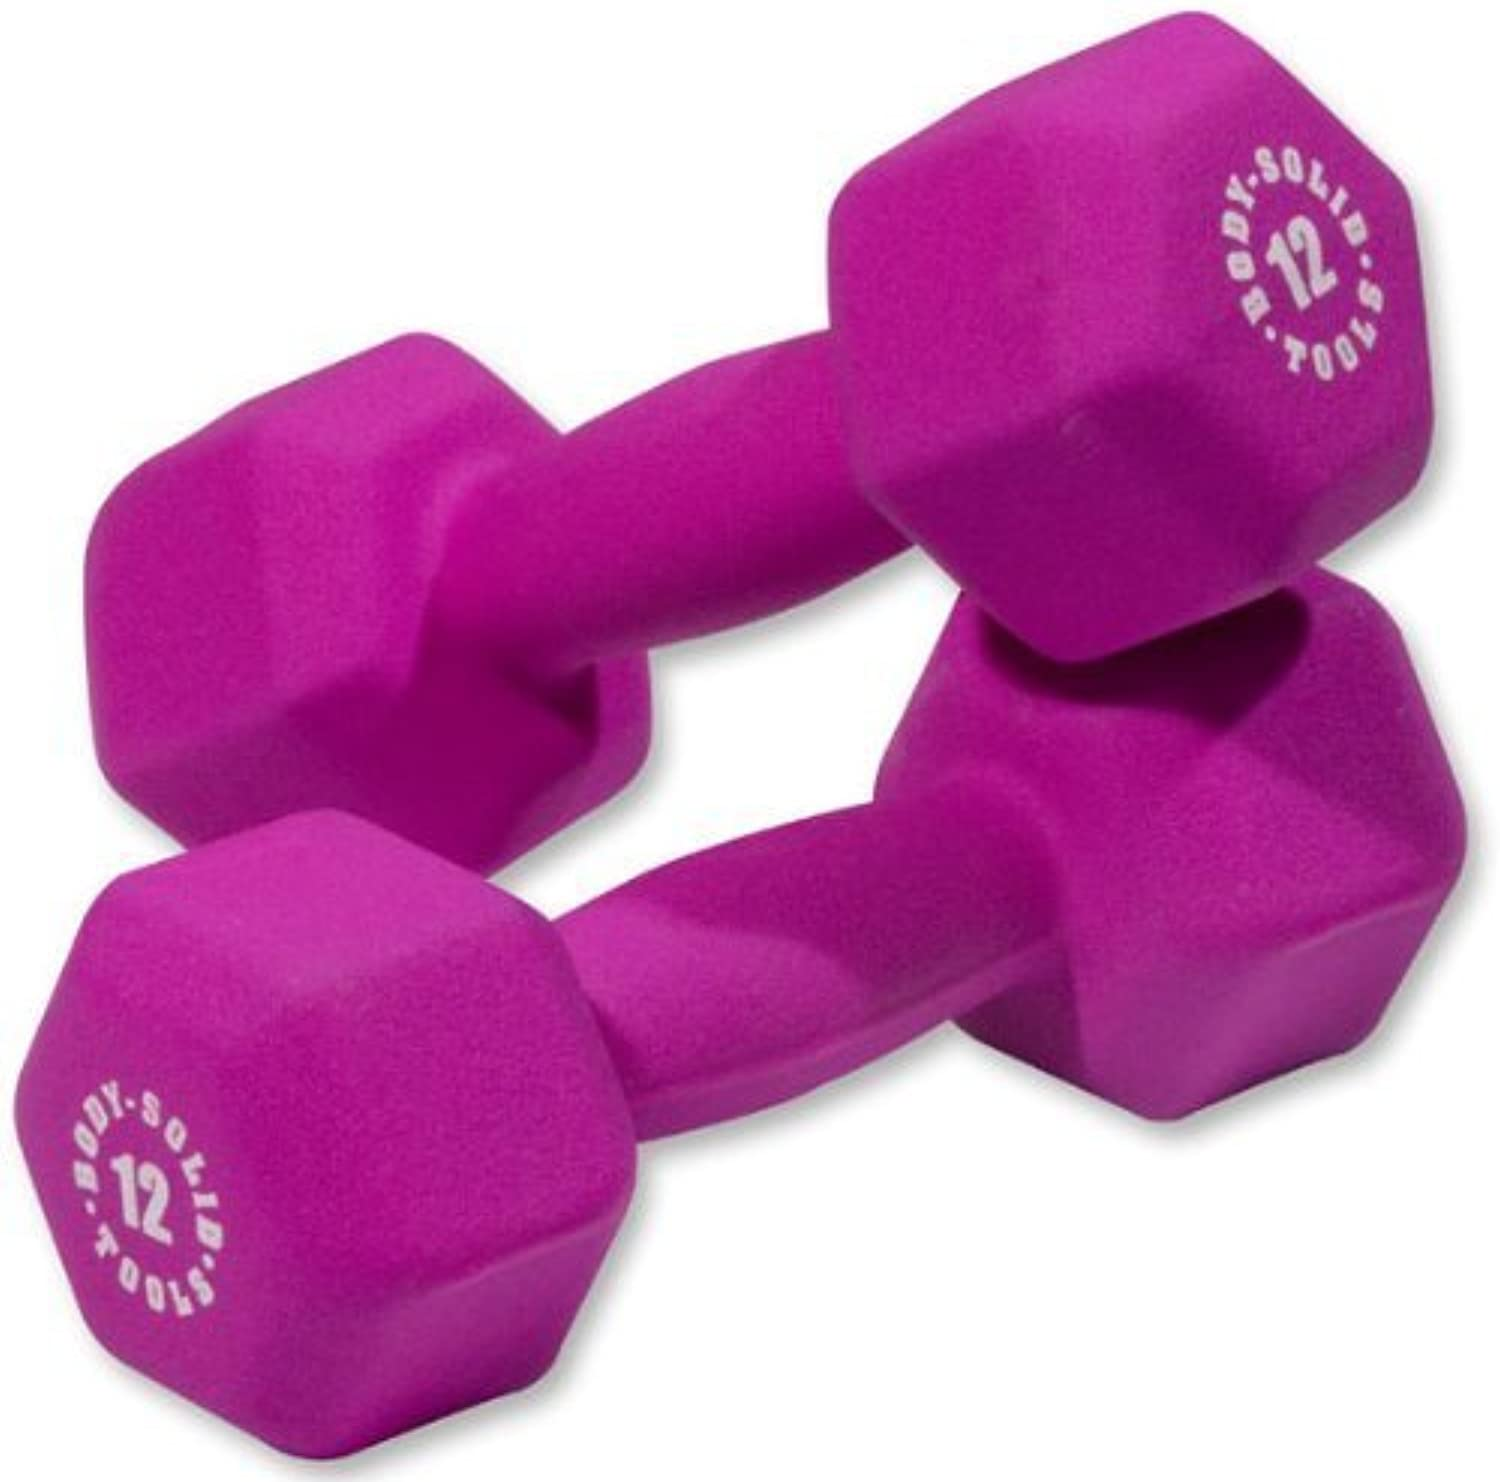 BodySolid Neoprene Dumbbells  12 lb. Pair by Ironcompany